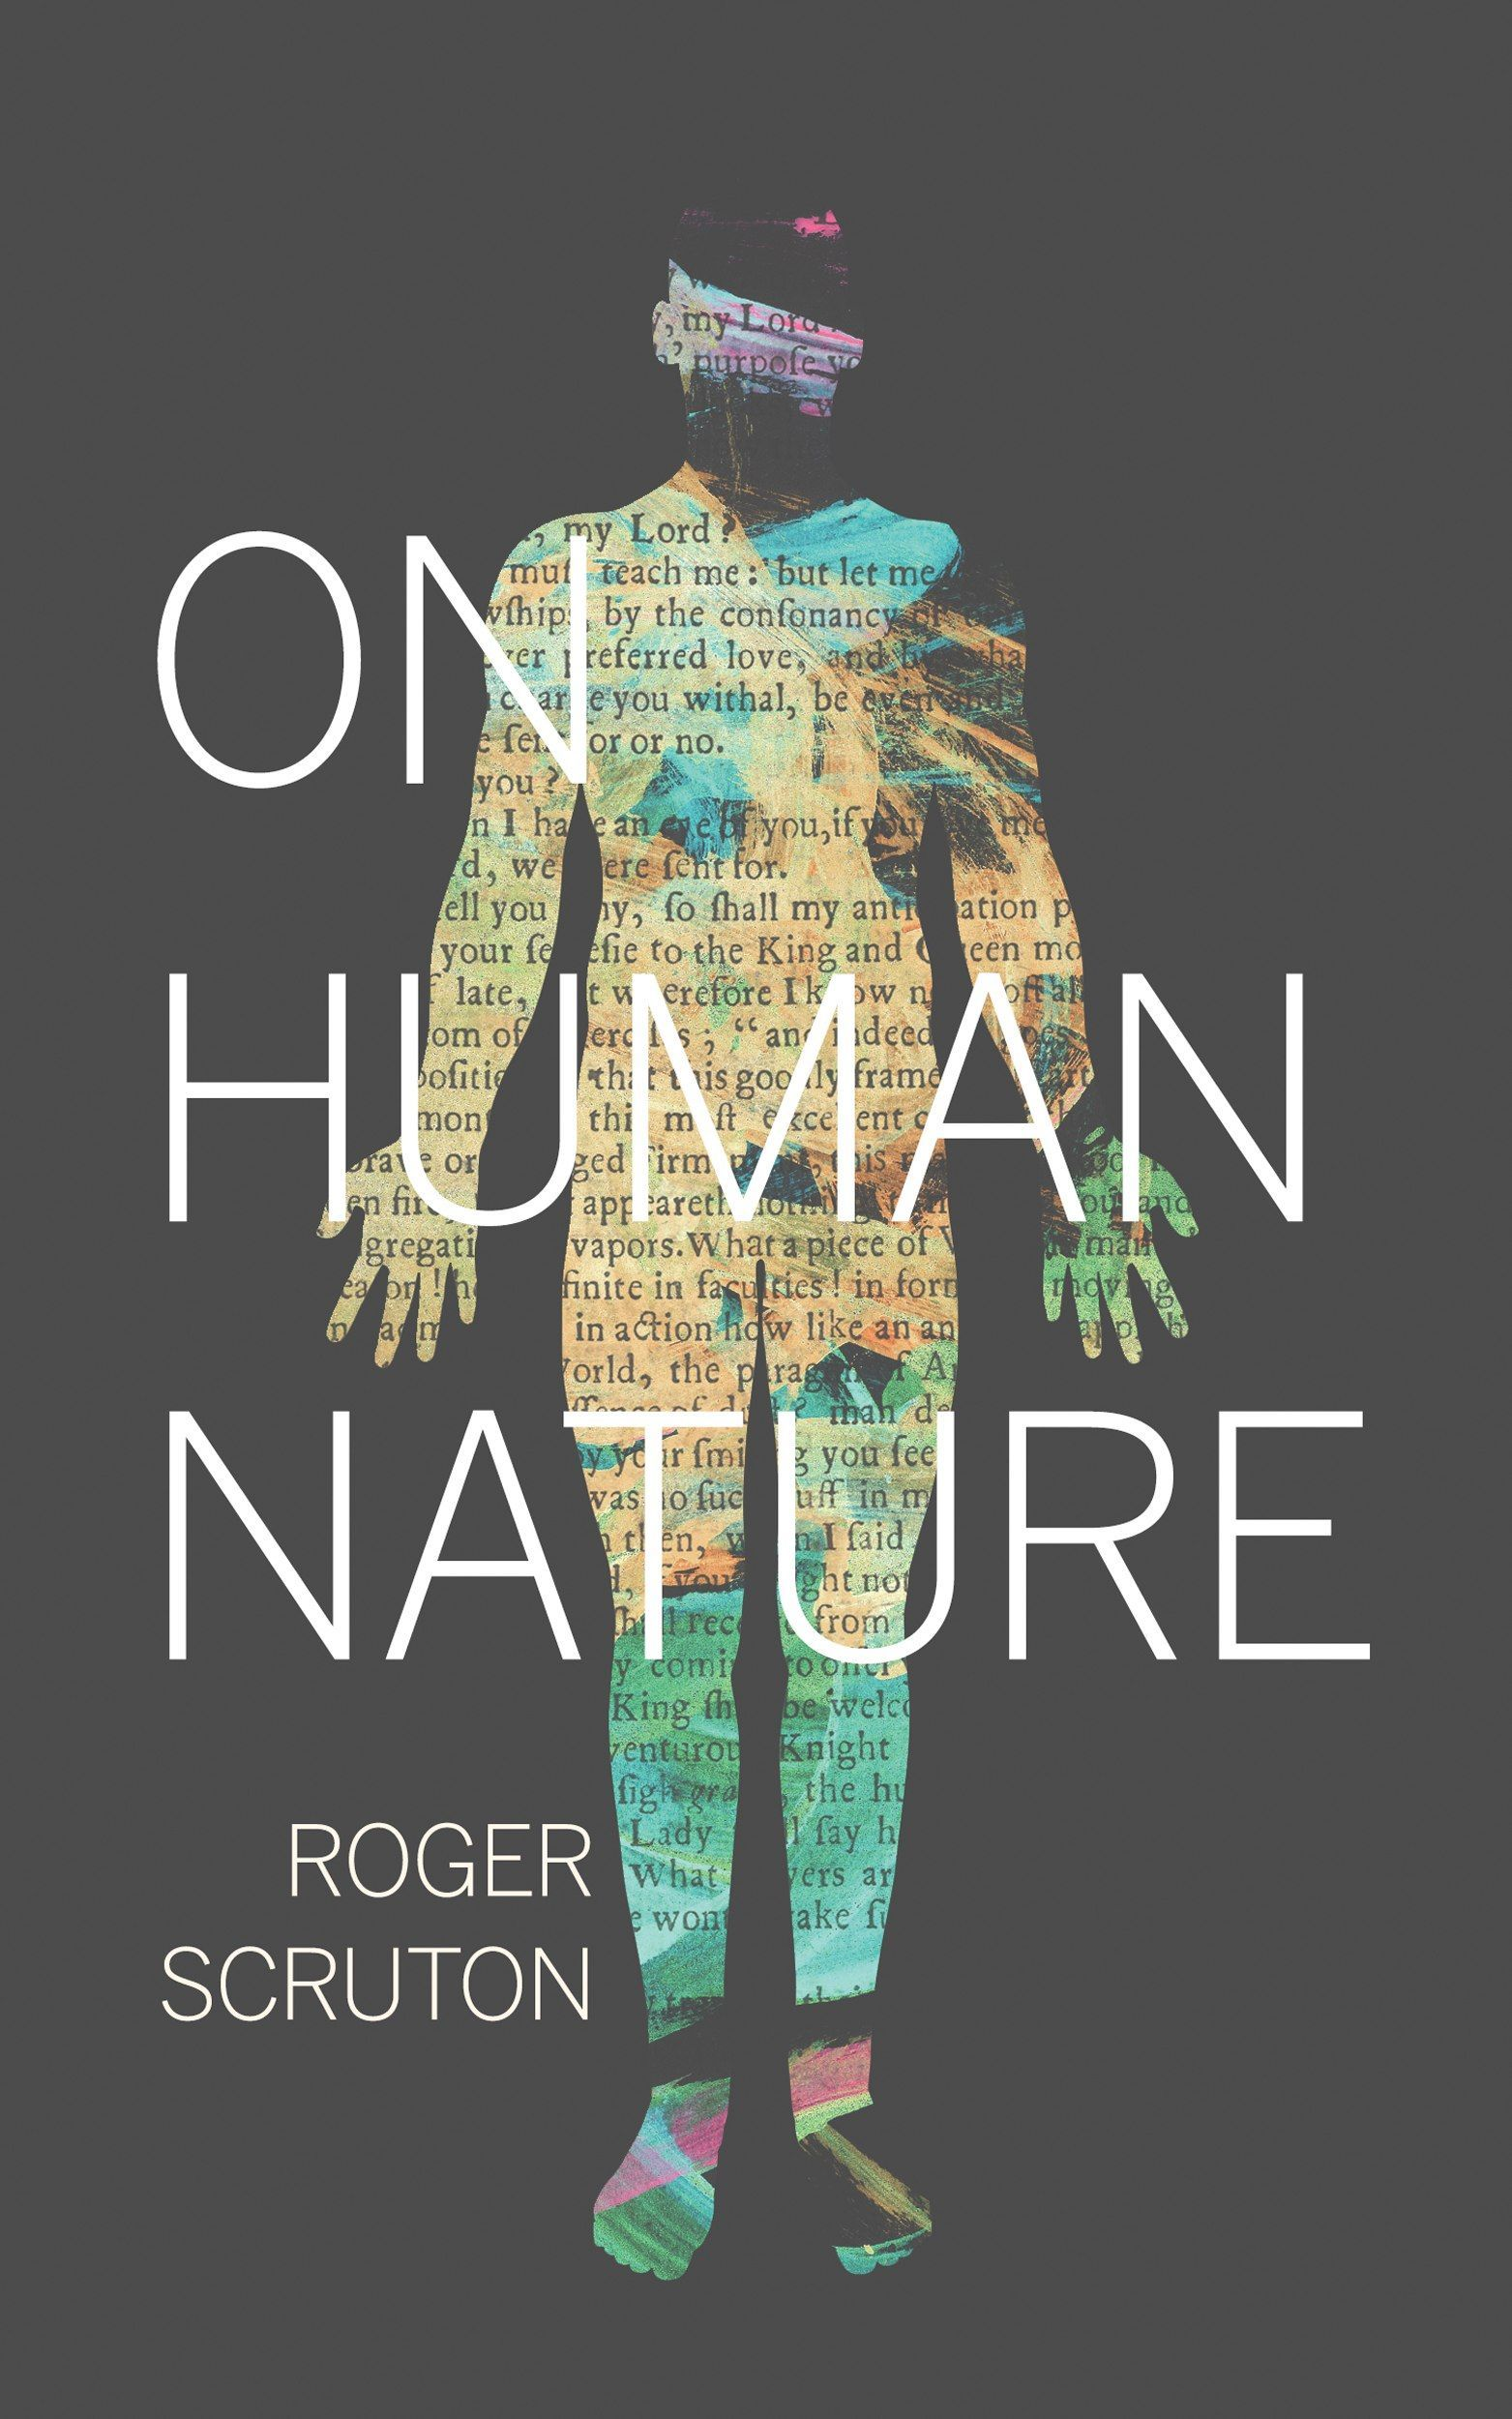 Scruton On Human Nature